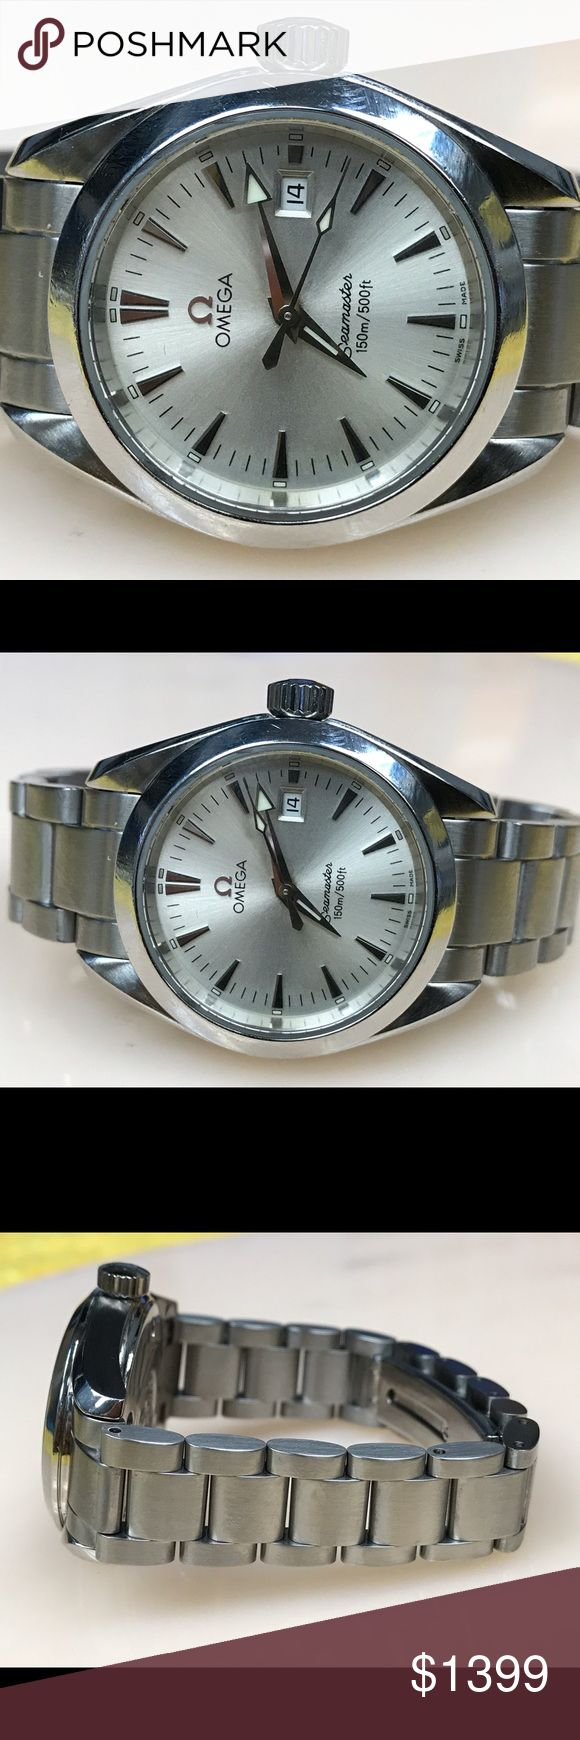 Omega seamaster aquaterra quartz women's watch. 💯 % authentic omega seamaster quartz women's watch. Date display. 150m water resistance.  Works great no flaws. Omega Accessories Watches